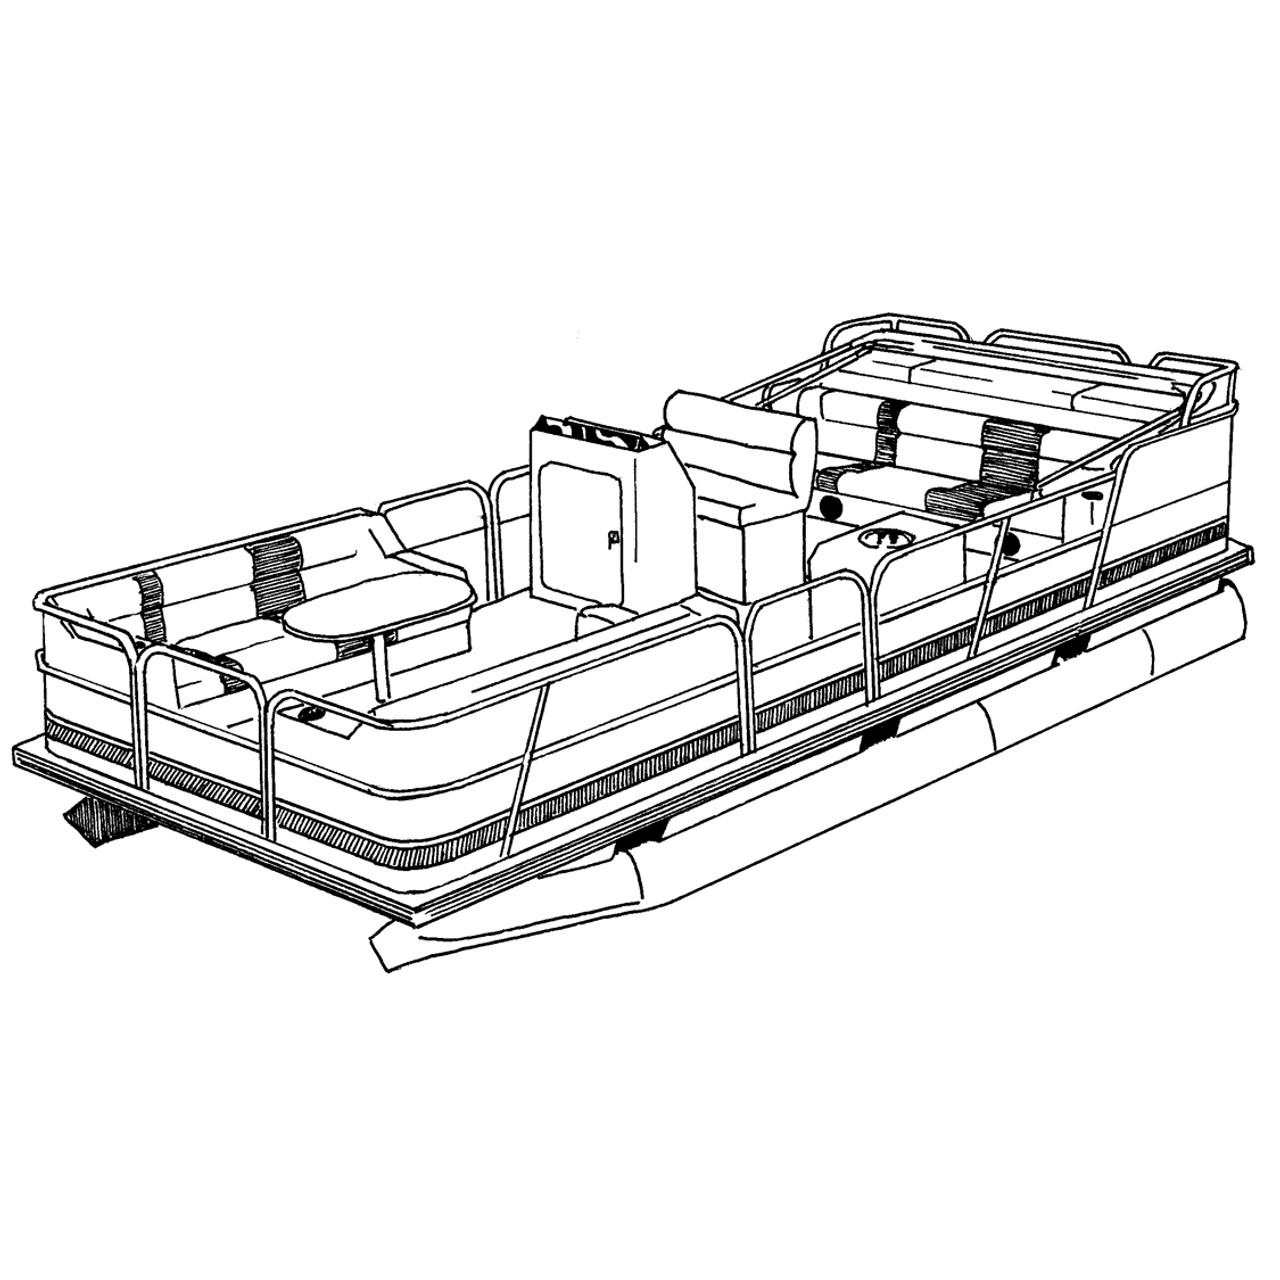 medium resolution of cover fits pontoon with bimini top and rails that fully enclose deck